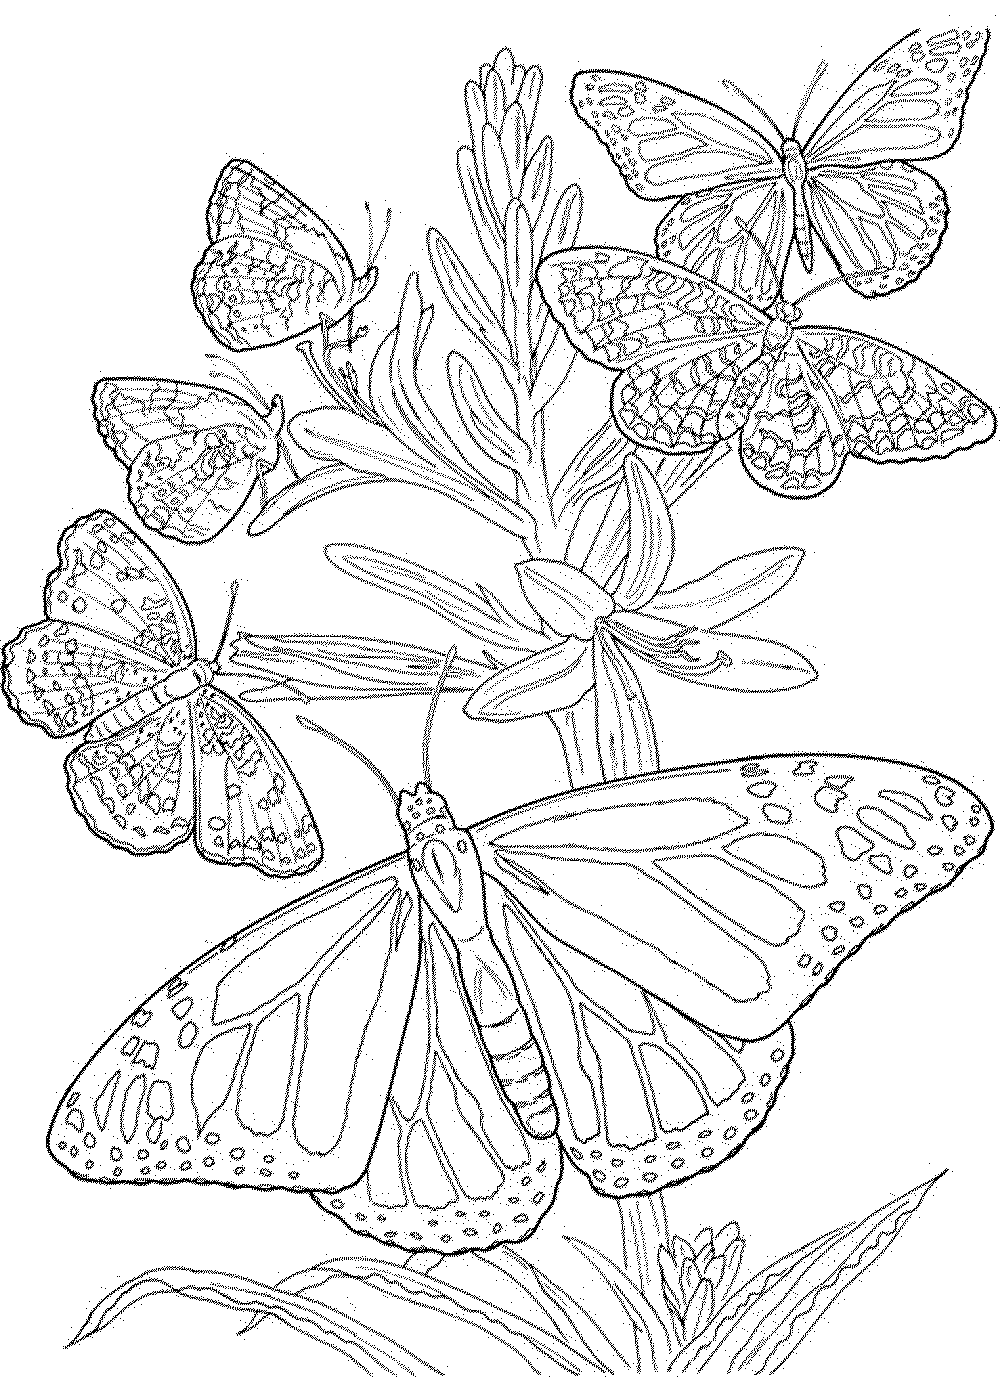 Coloring Book Pages For Adults Printable Kids Colouring Pages Butterfly Coloring Page Flower Coloring Pages Free Coloring Pages